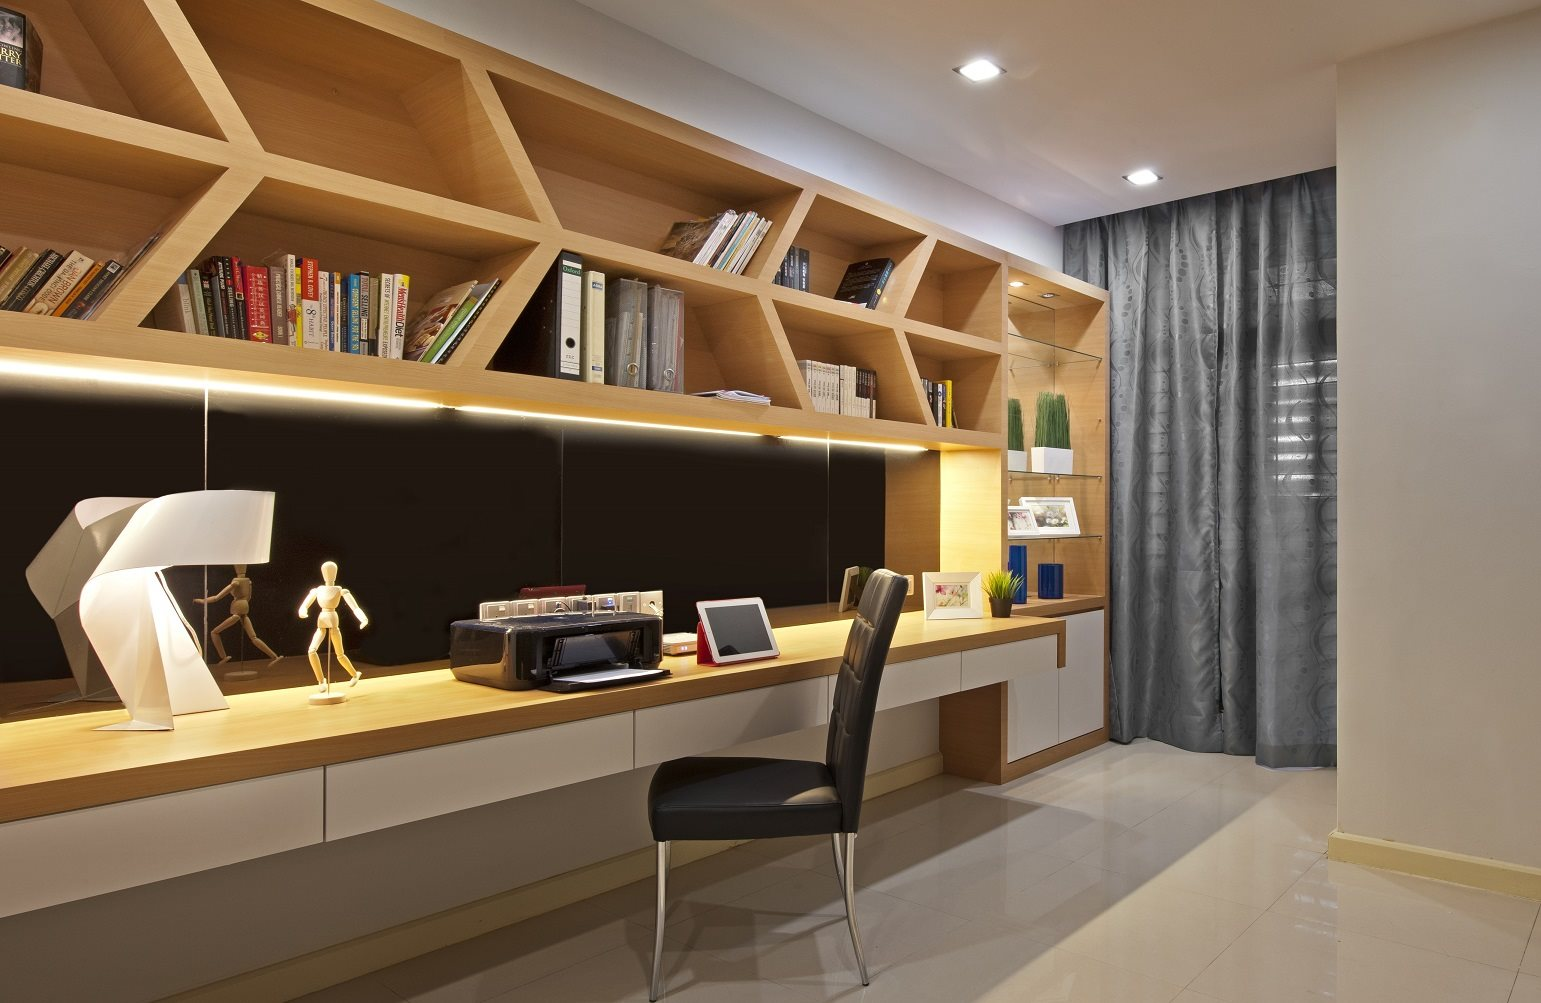 Bukit Jelutong terrace house gets the Surface R touch